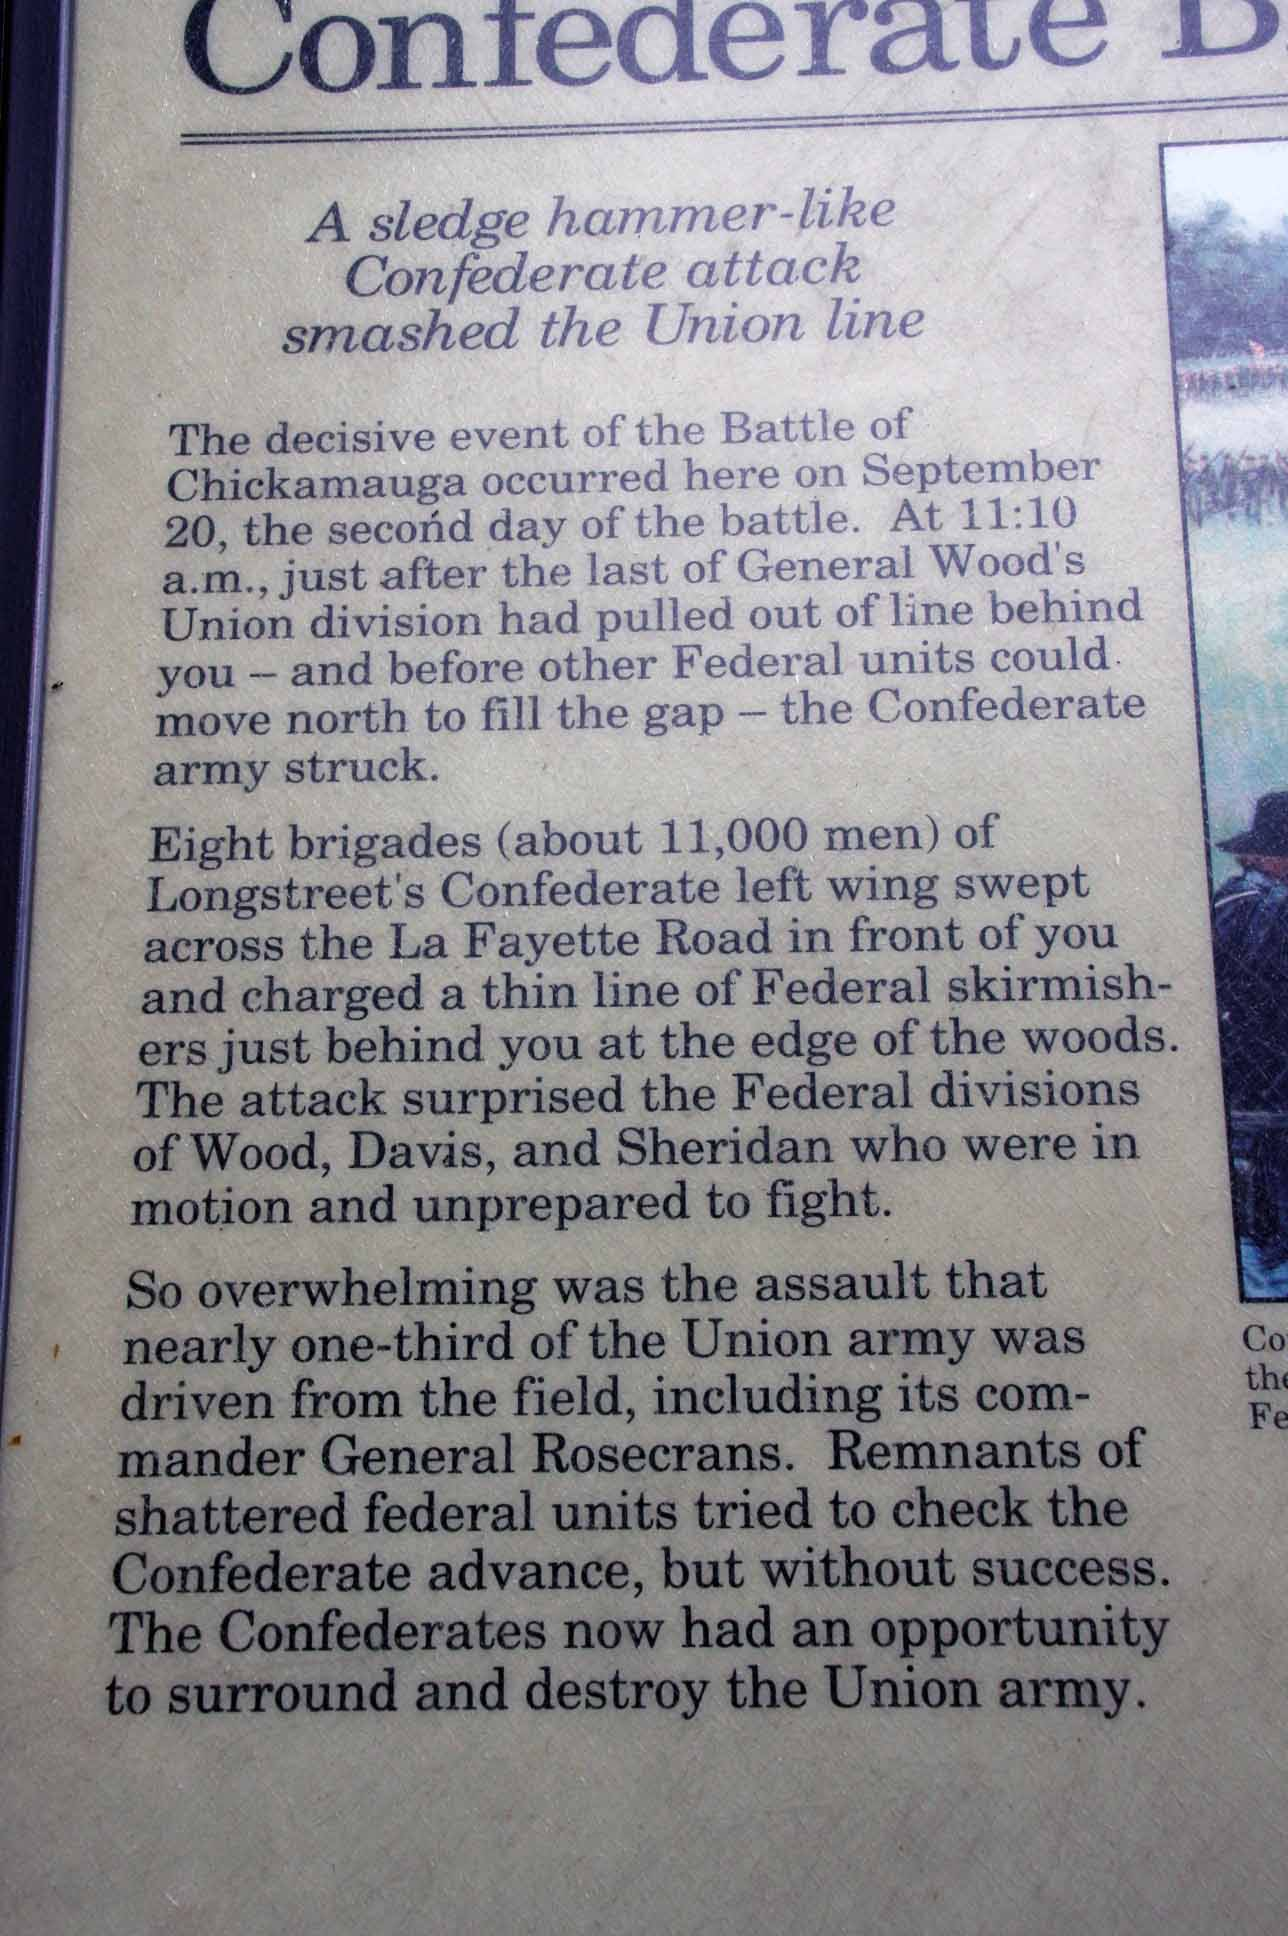 Confederate Breakthrough, click photo to enlarge.